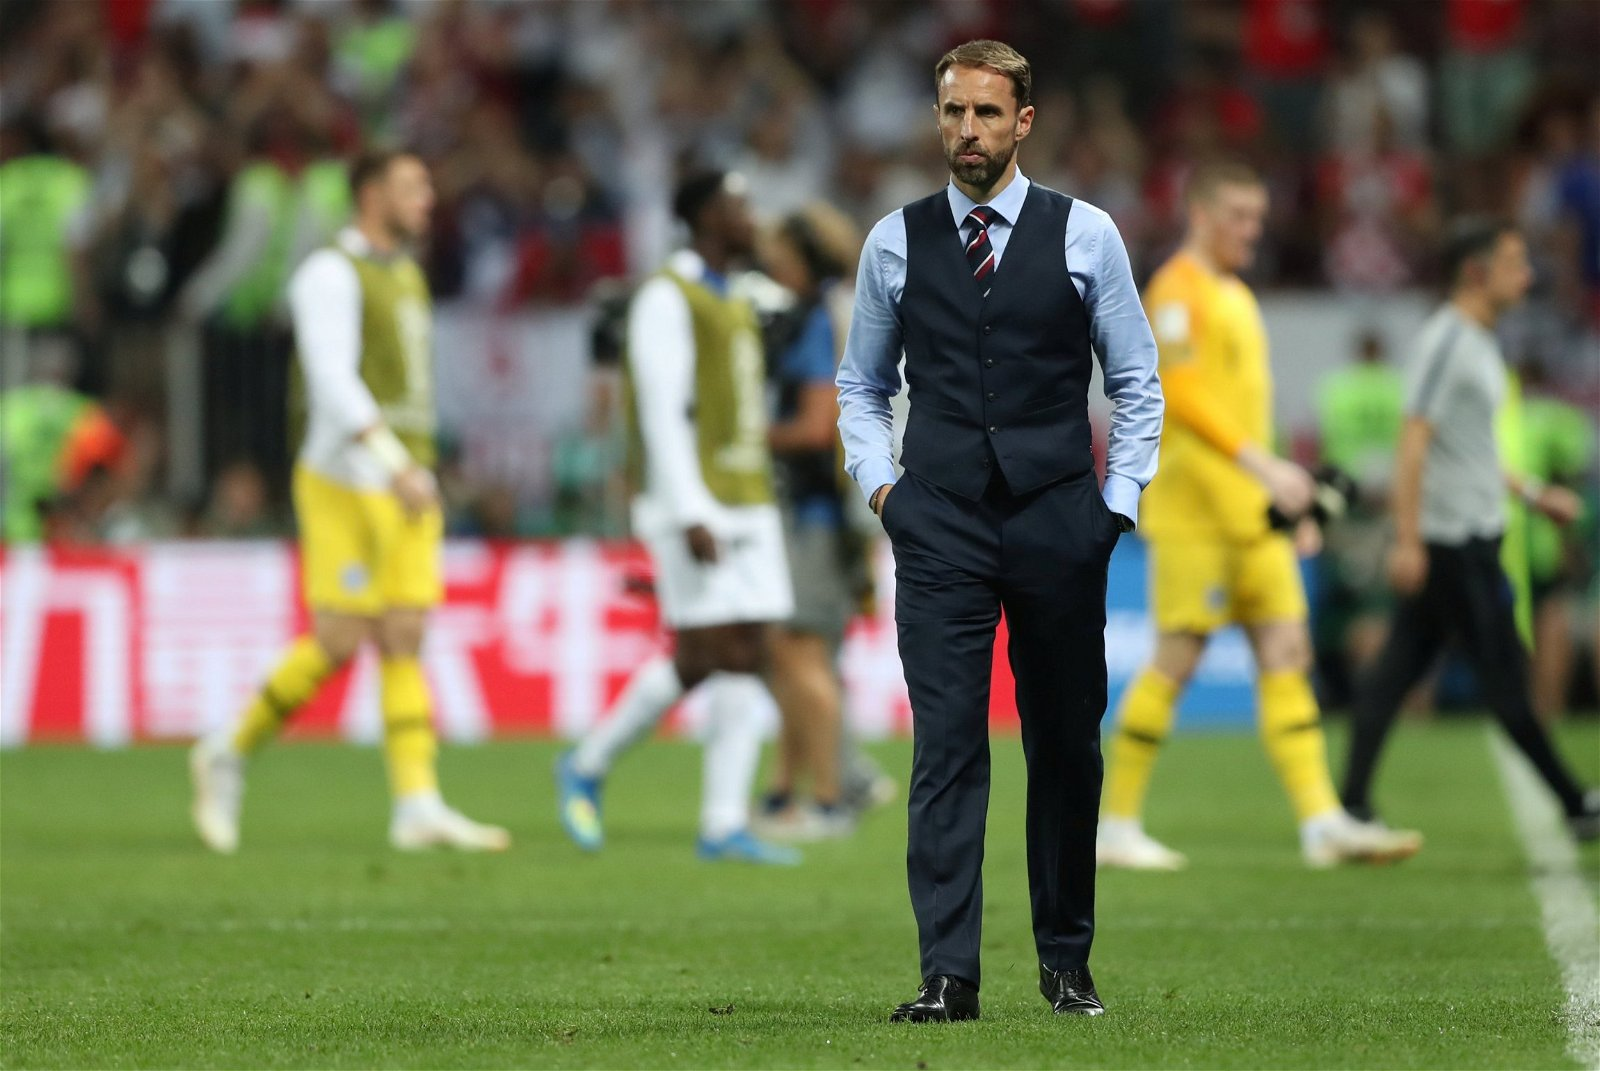 The lessons England have learned that will eventually win the World Cup